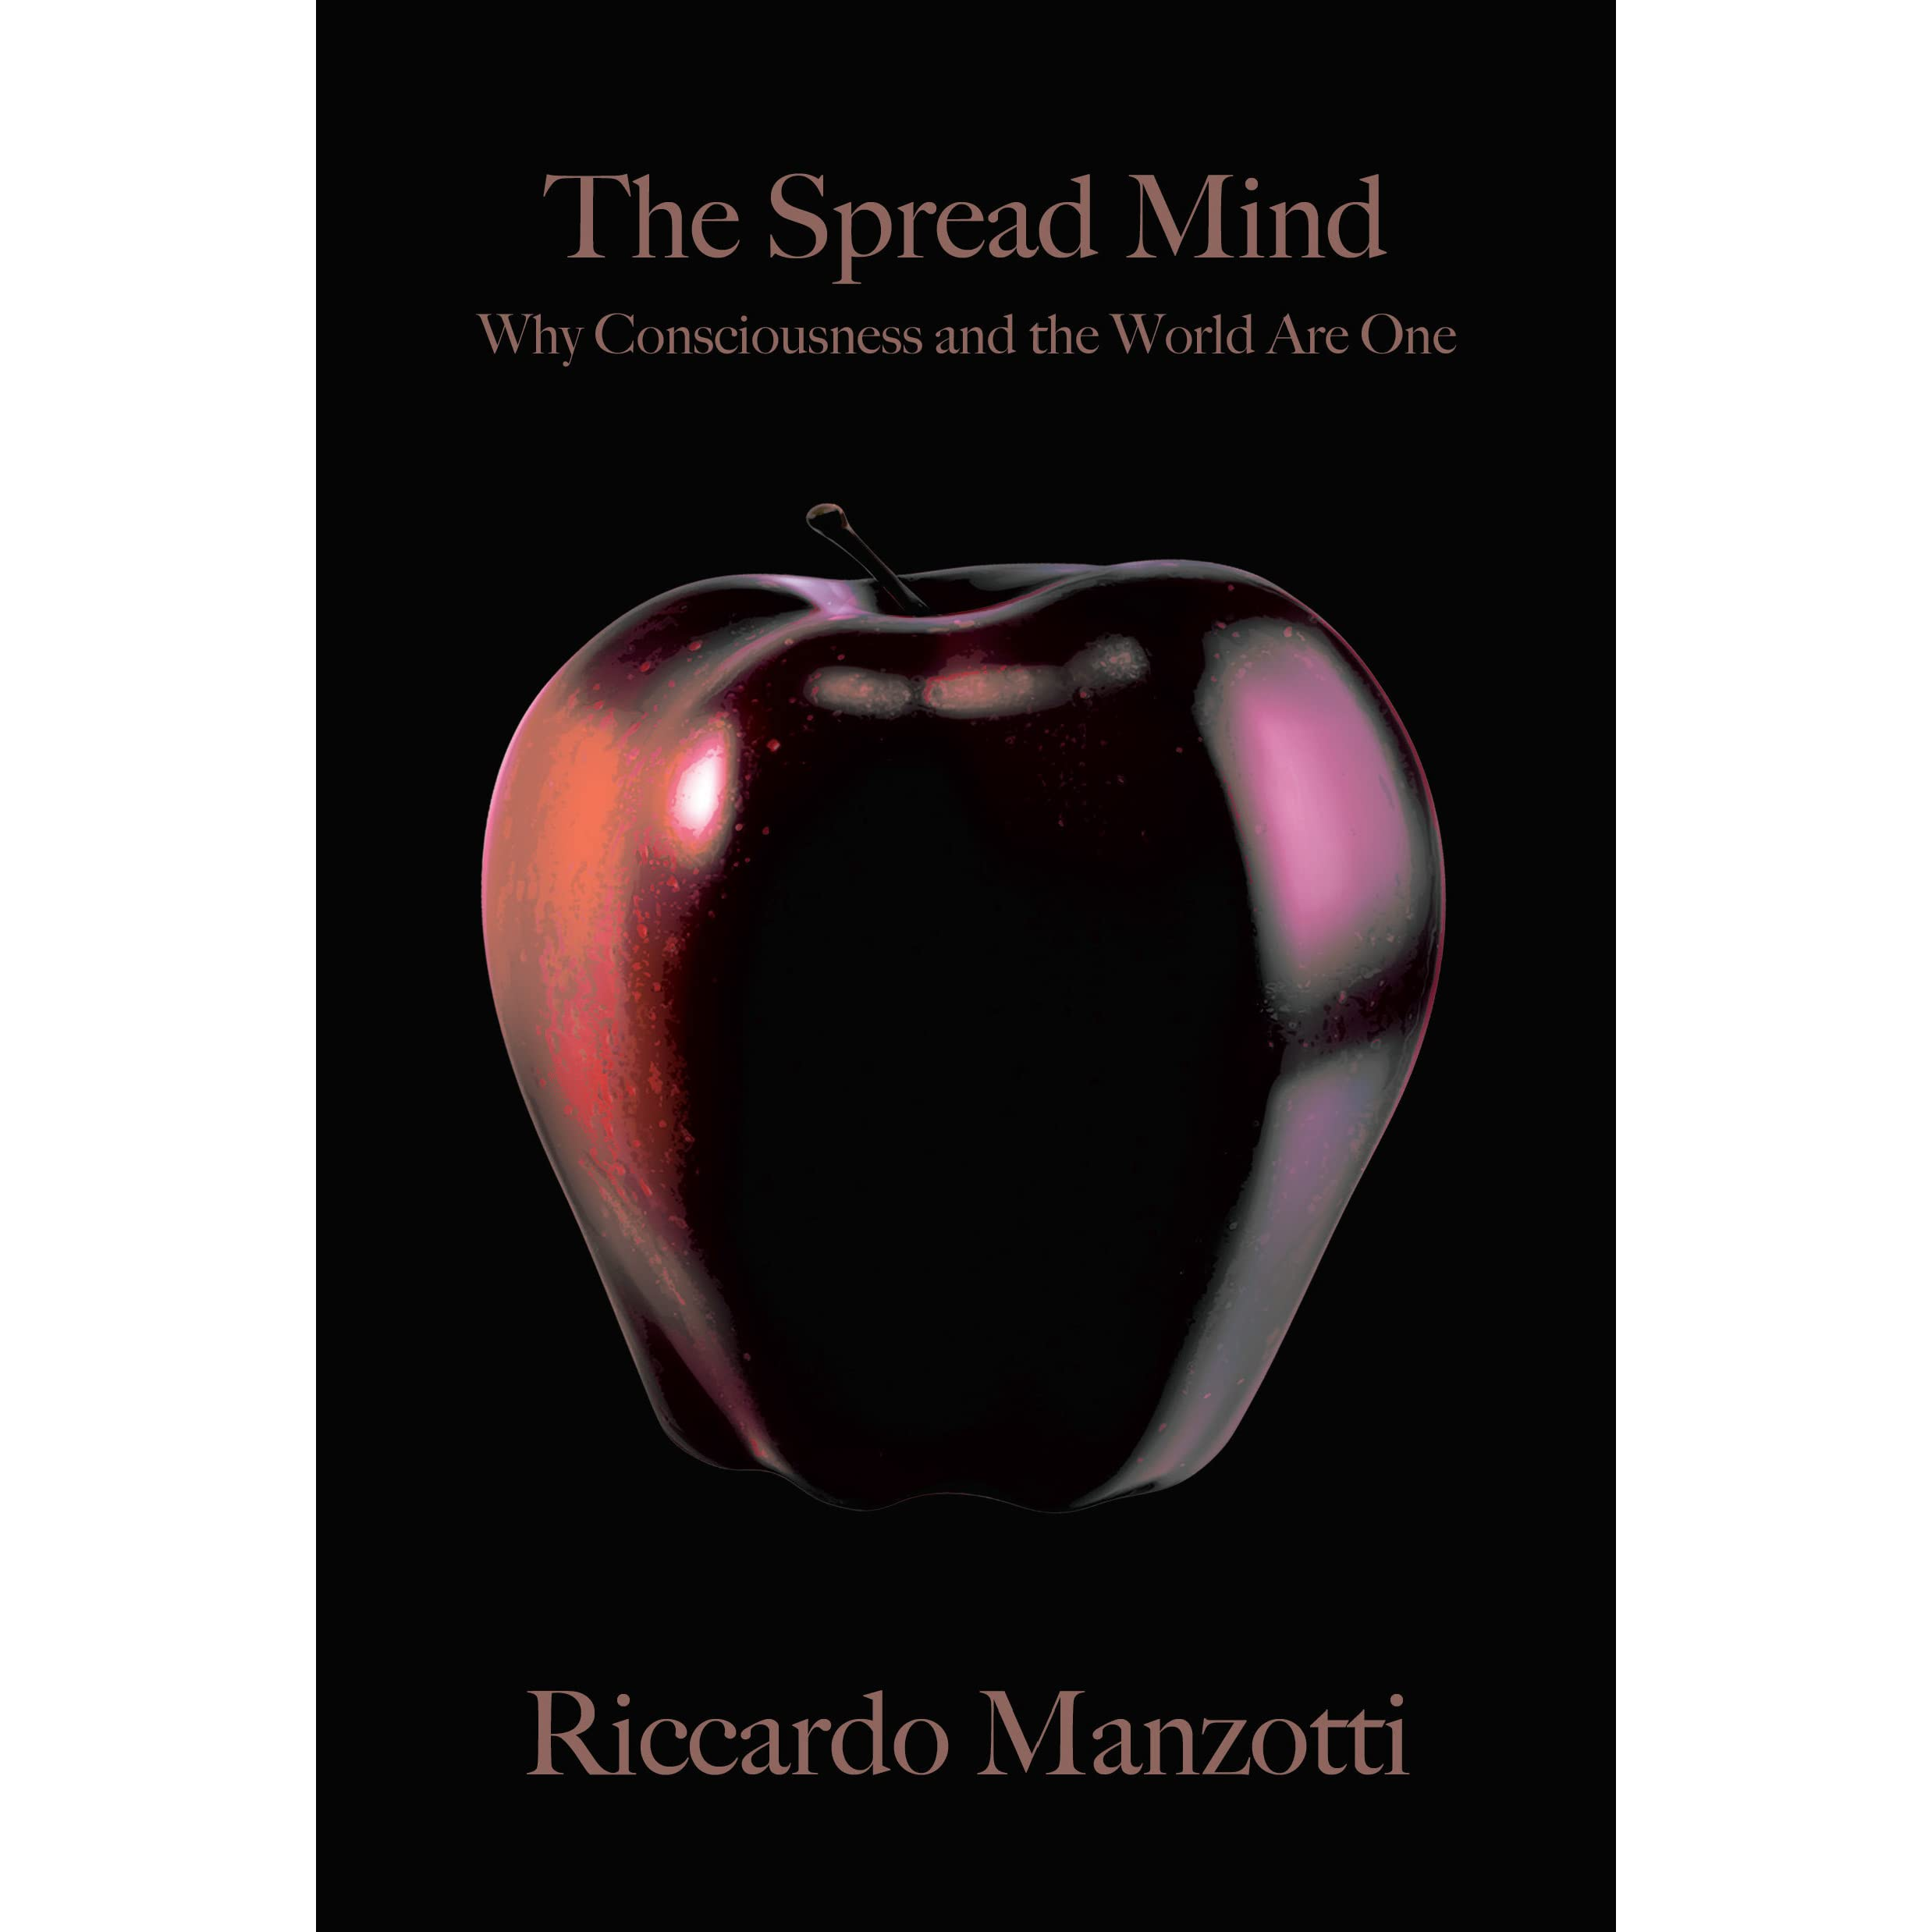 The Spread Mind: Why Consciousness and the World Are One by Riccardo  Manzotti